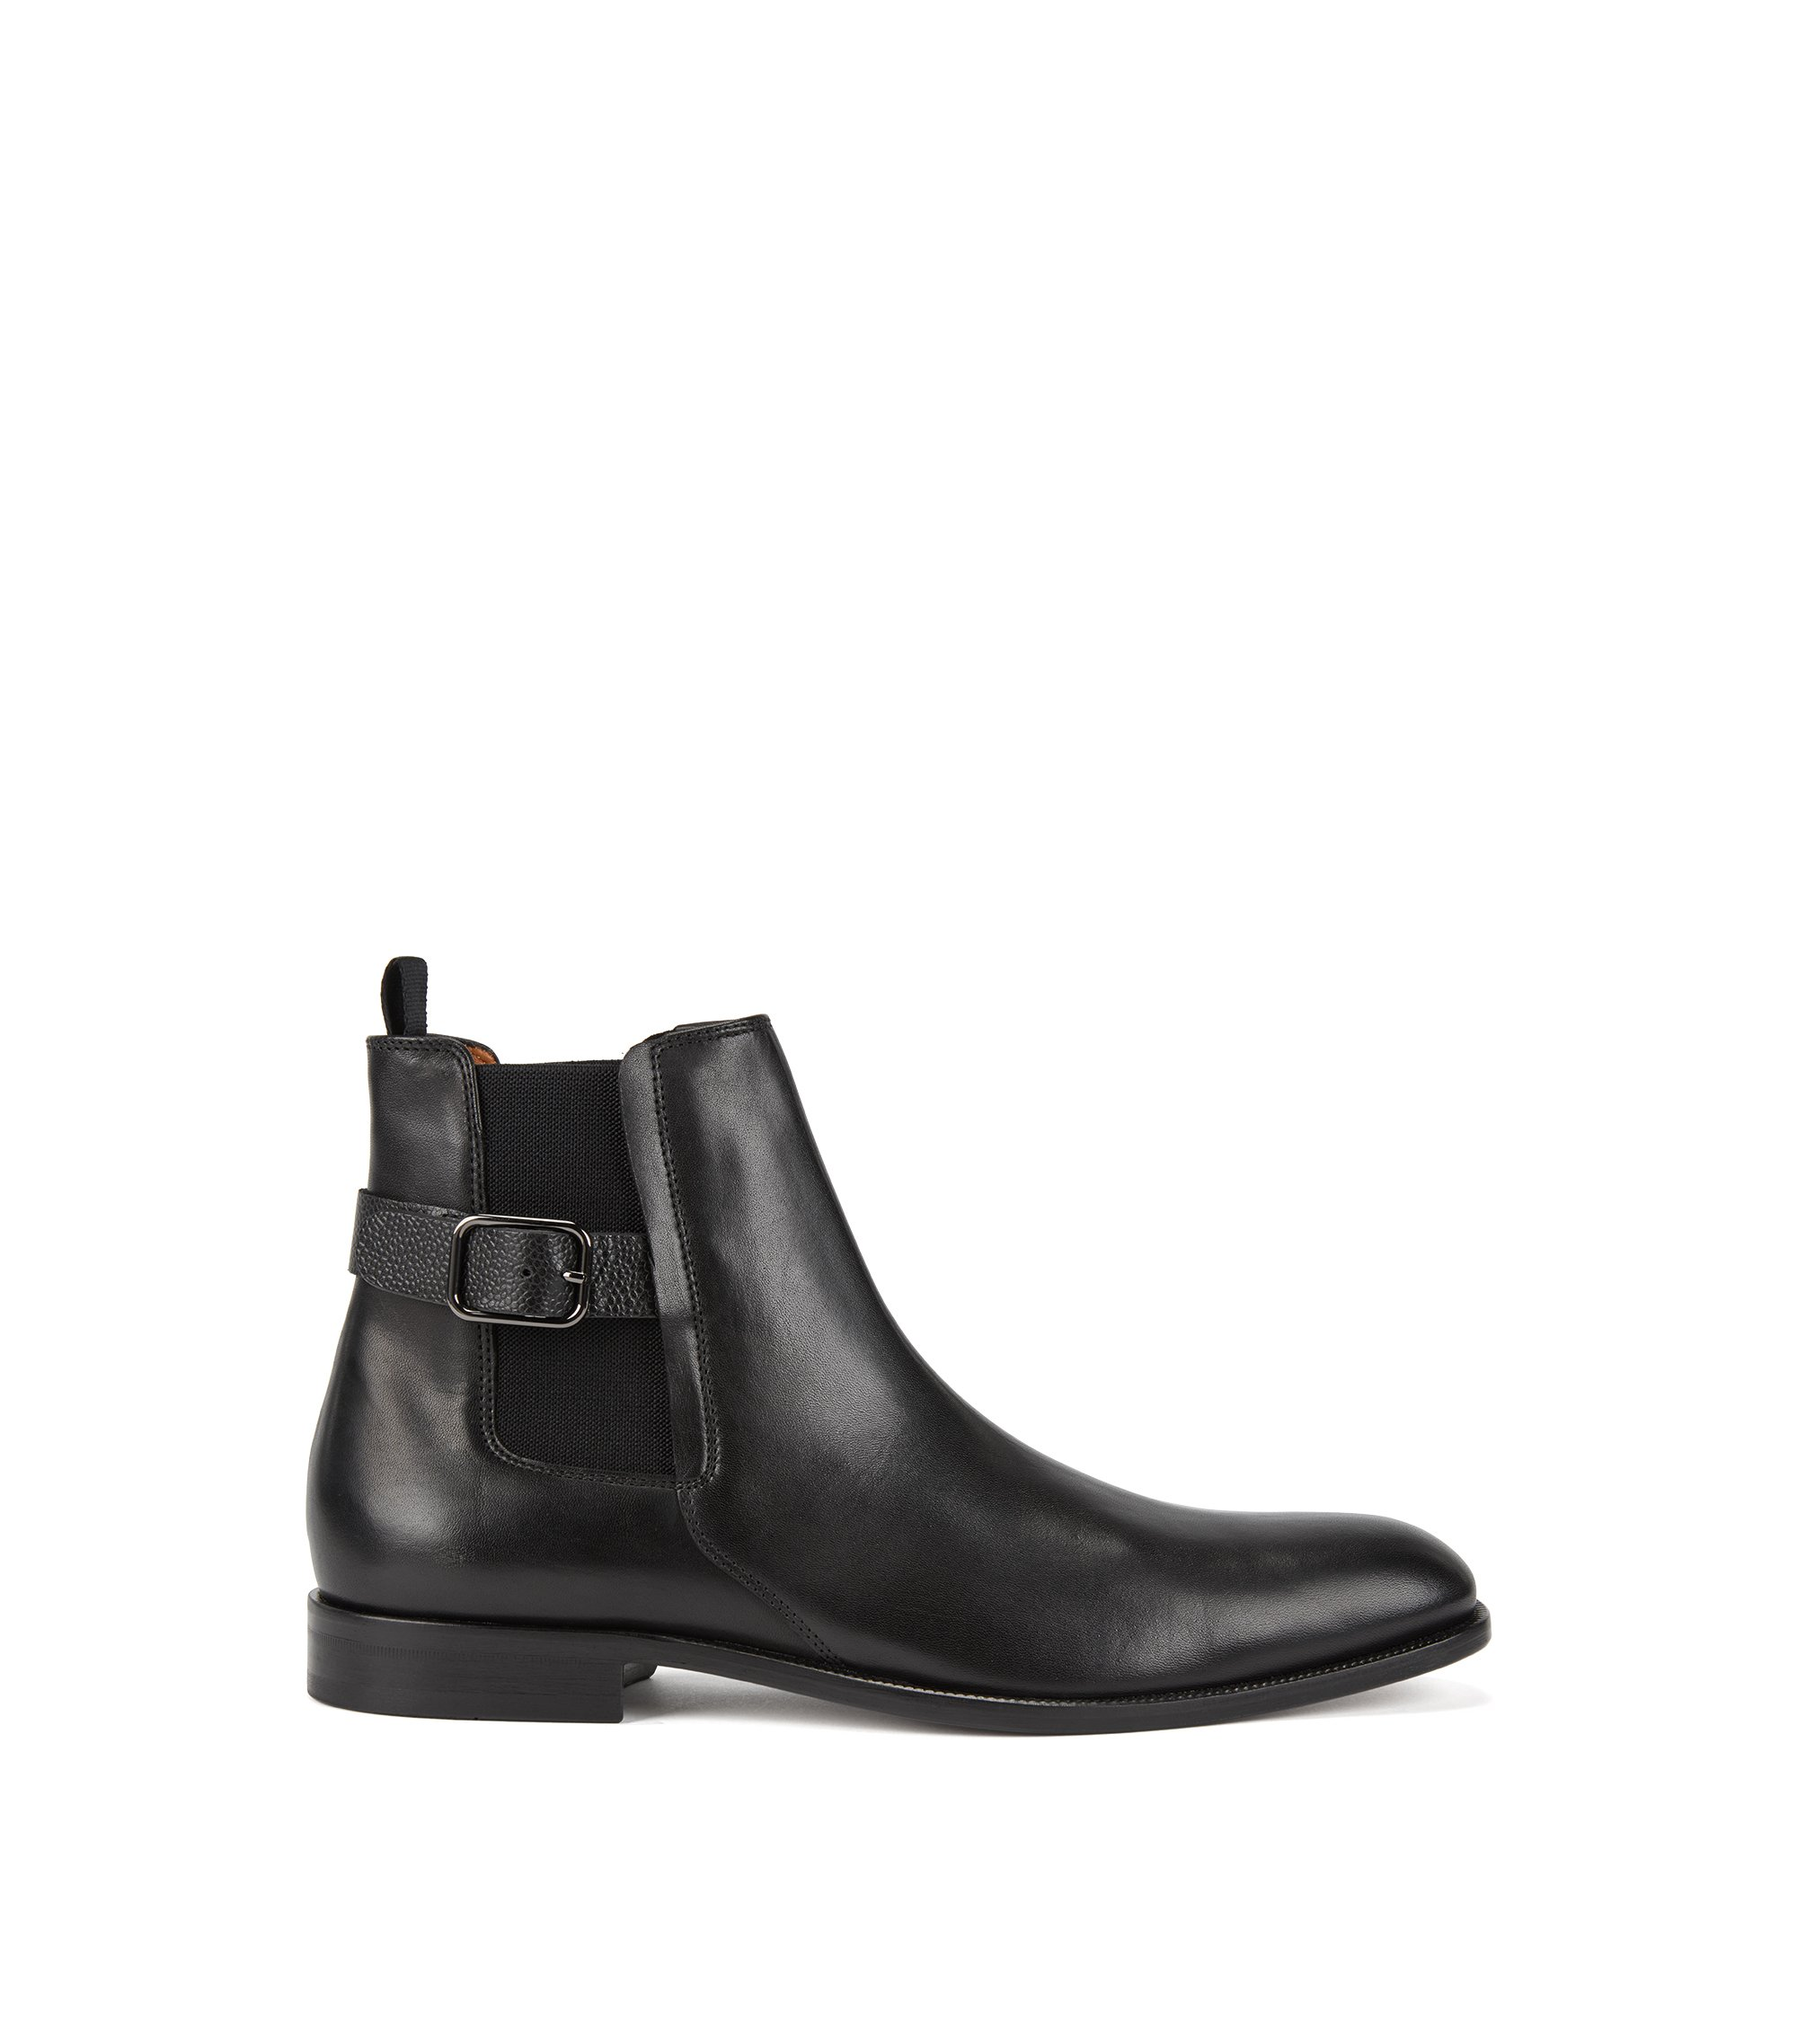 Chelsea boots in calf leather with Scotch-leather straps, Black